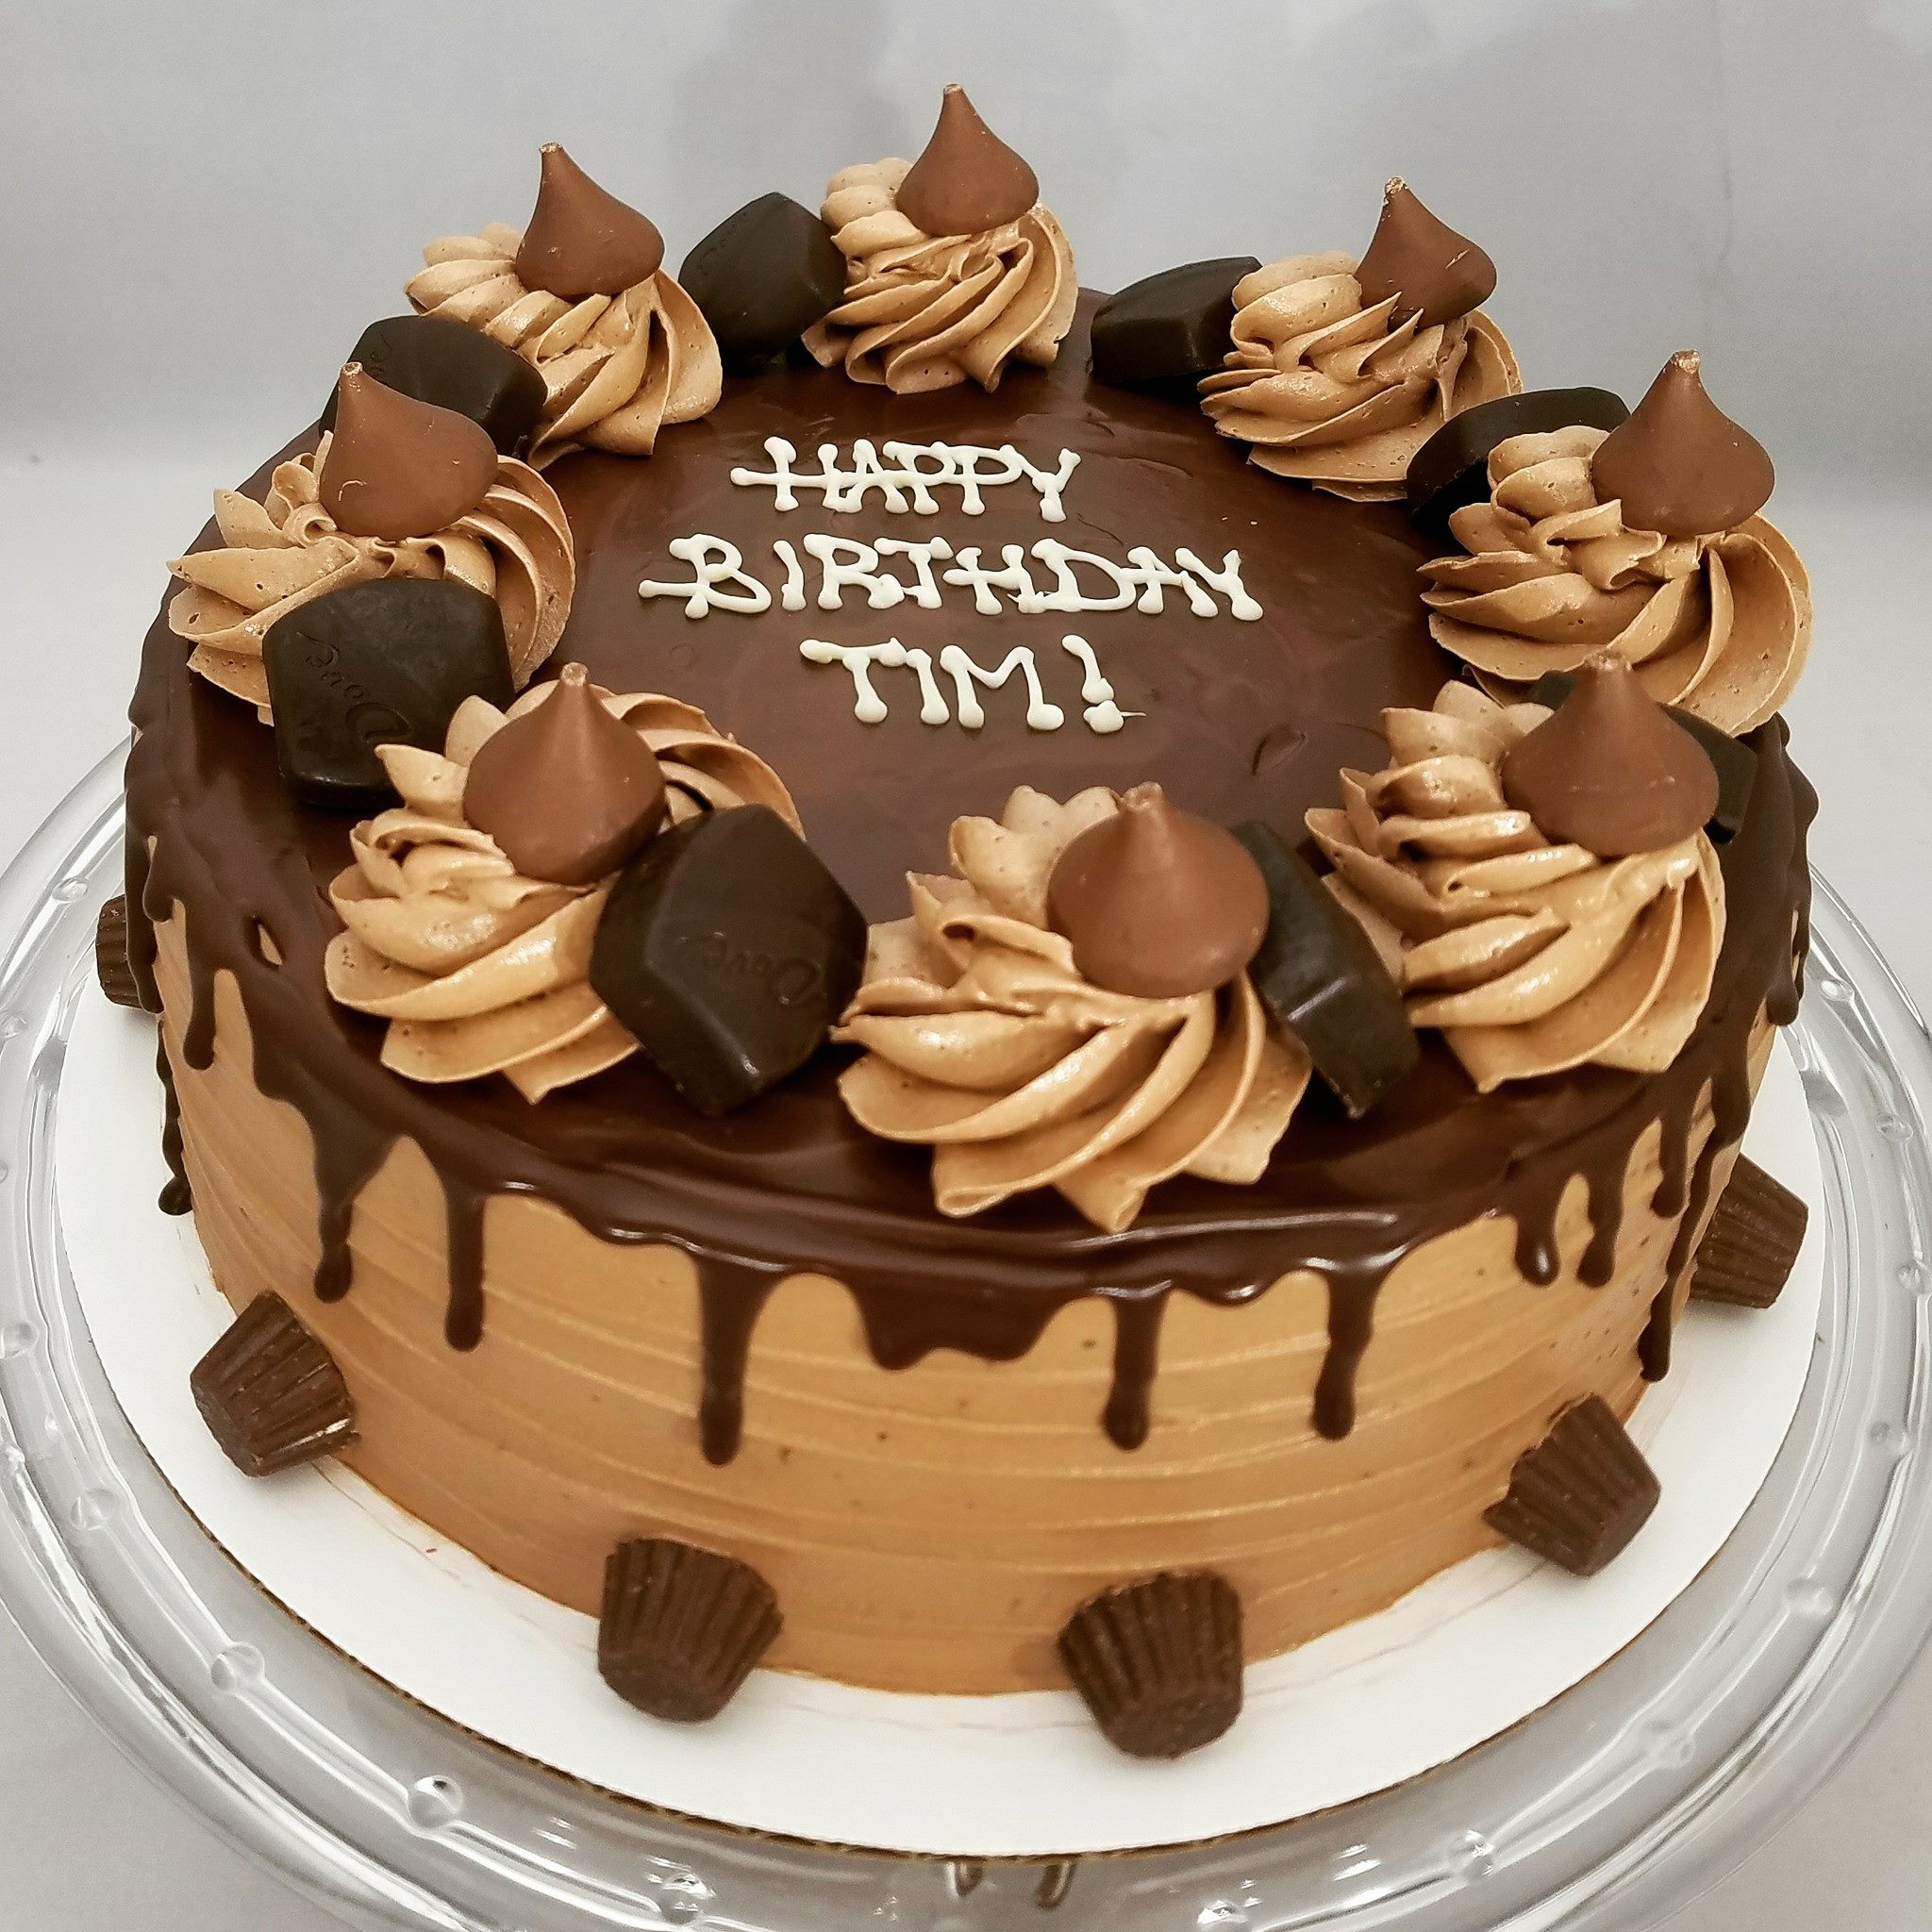 Choclate birthday cake